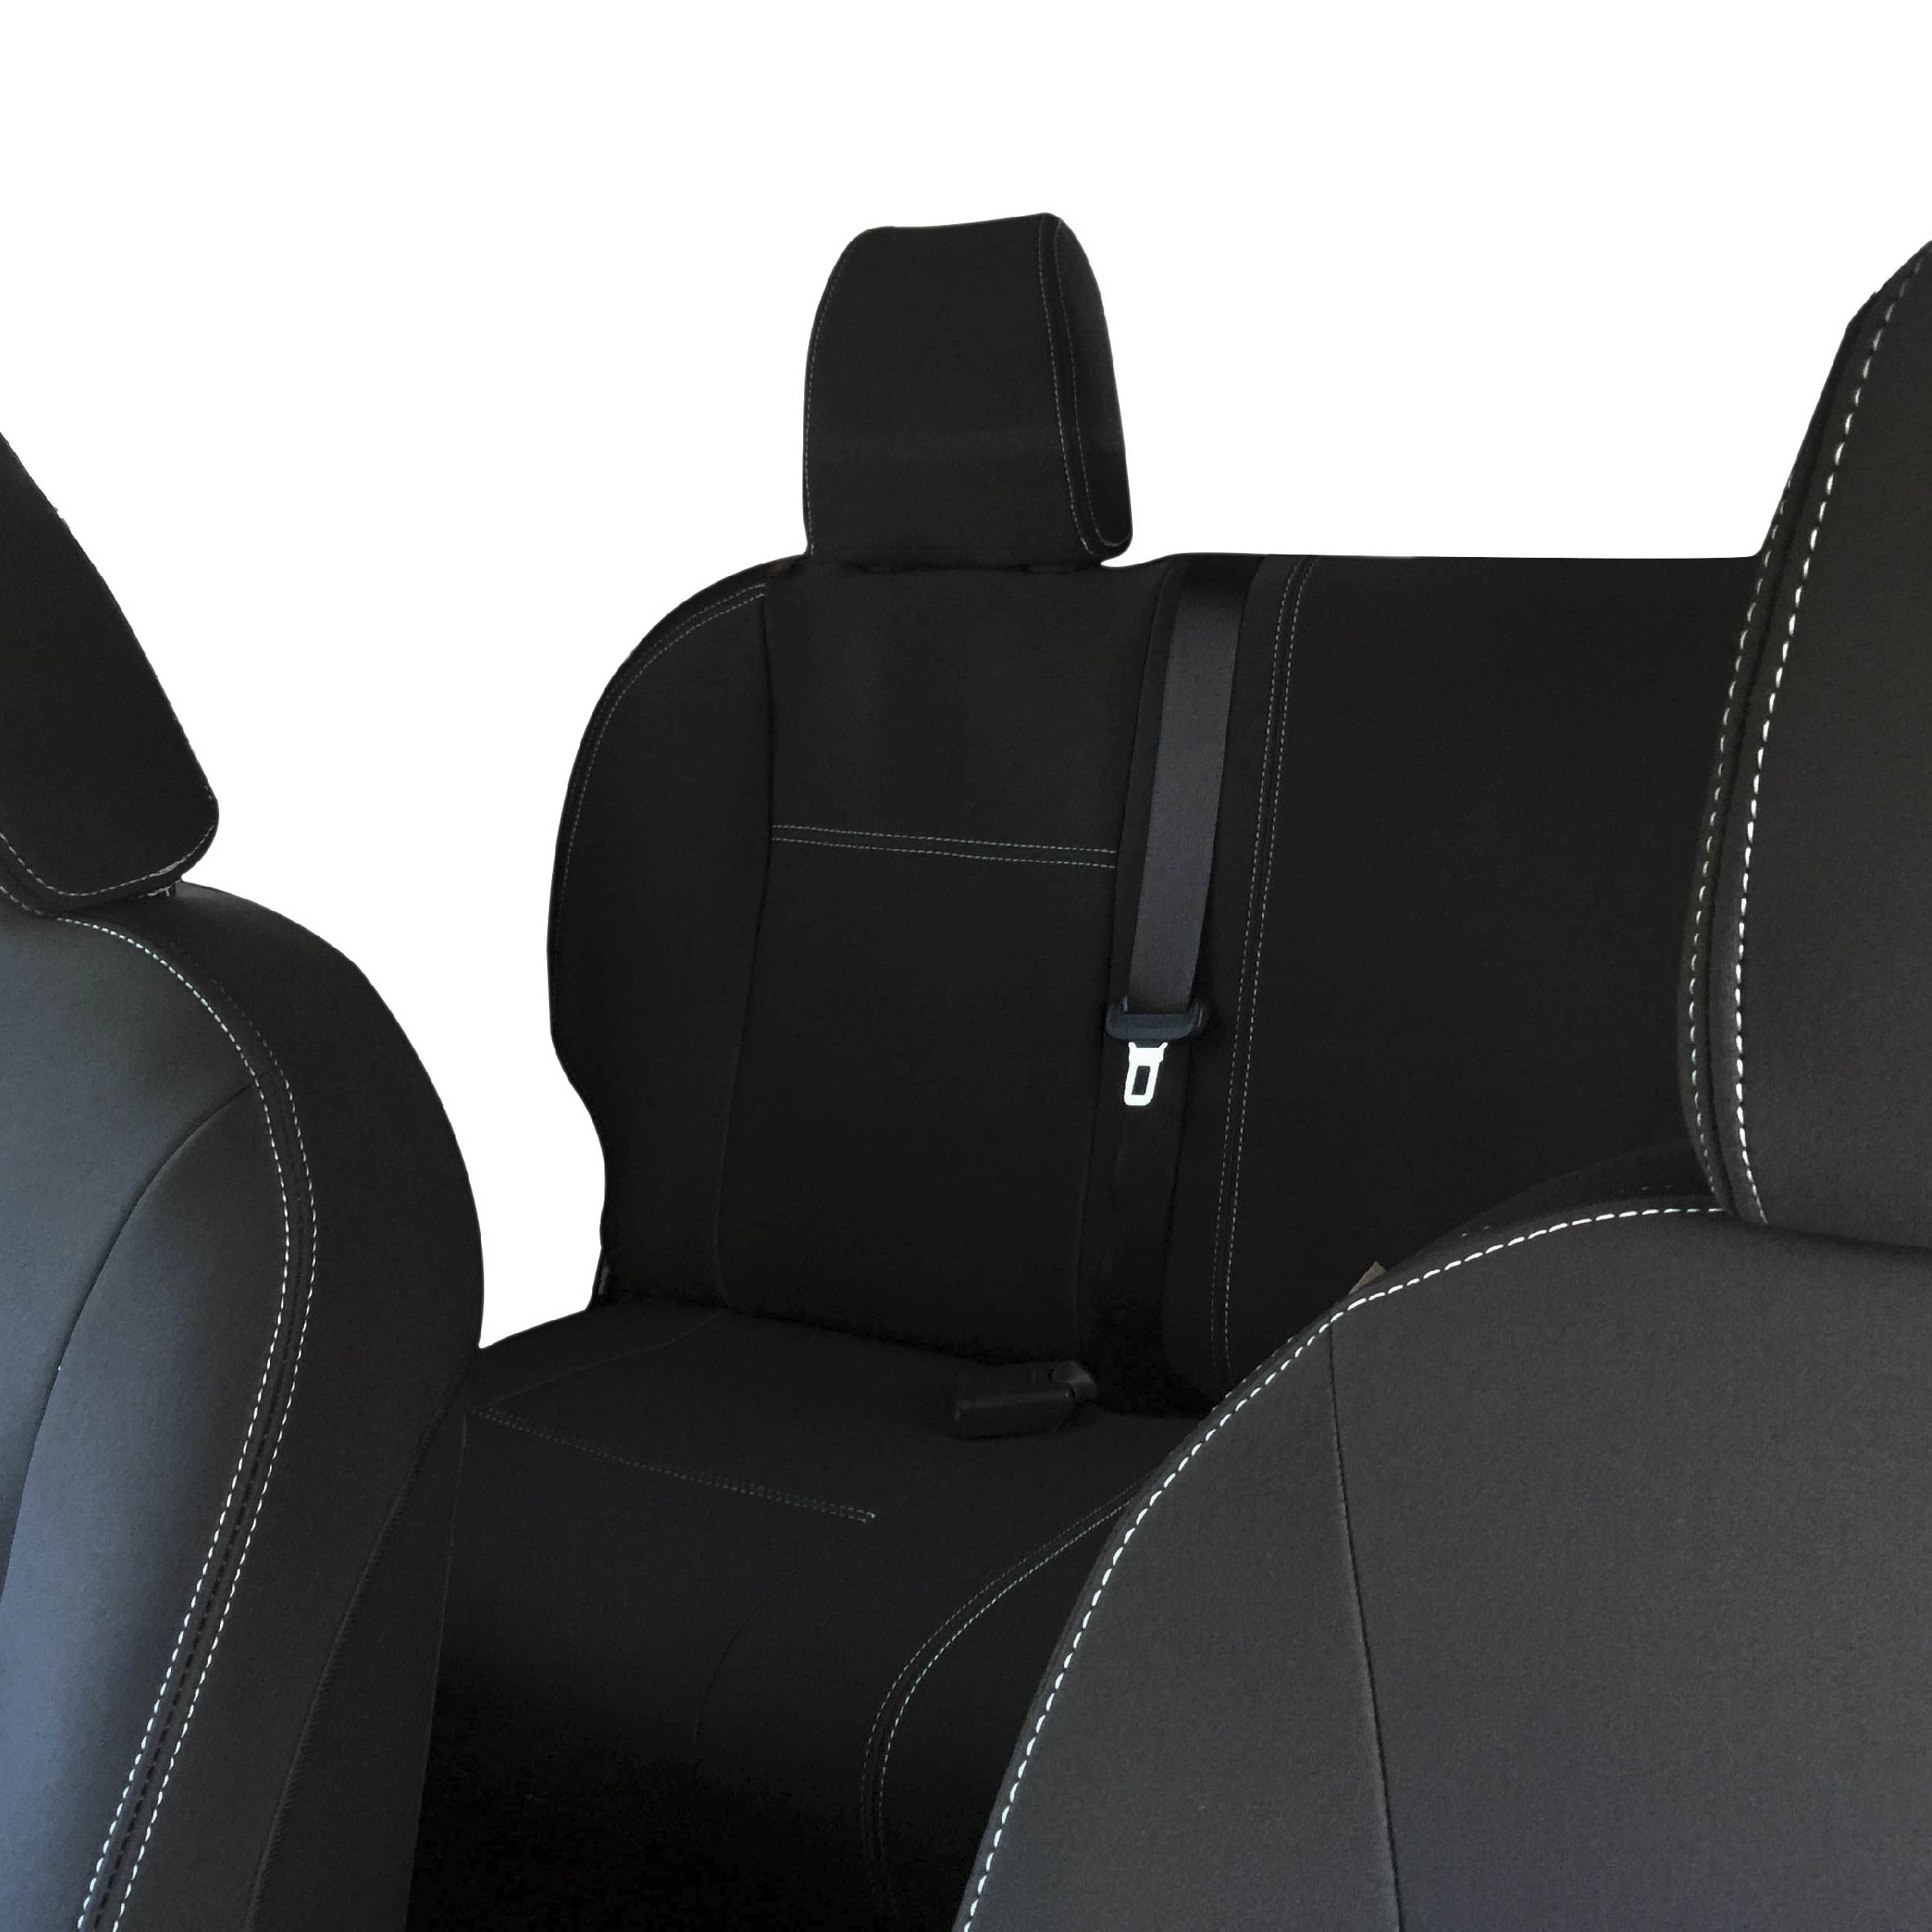 Heavy Duty Black Waterproof Car Seat Covers 2 x Fronts FITS NISSAN X-TRAIL